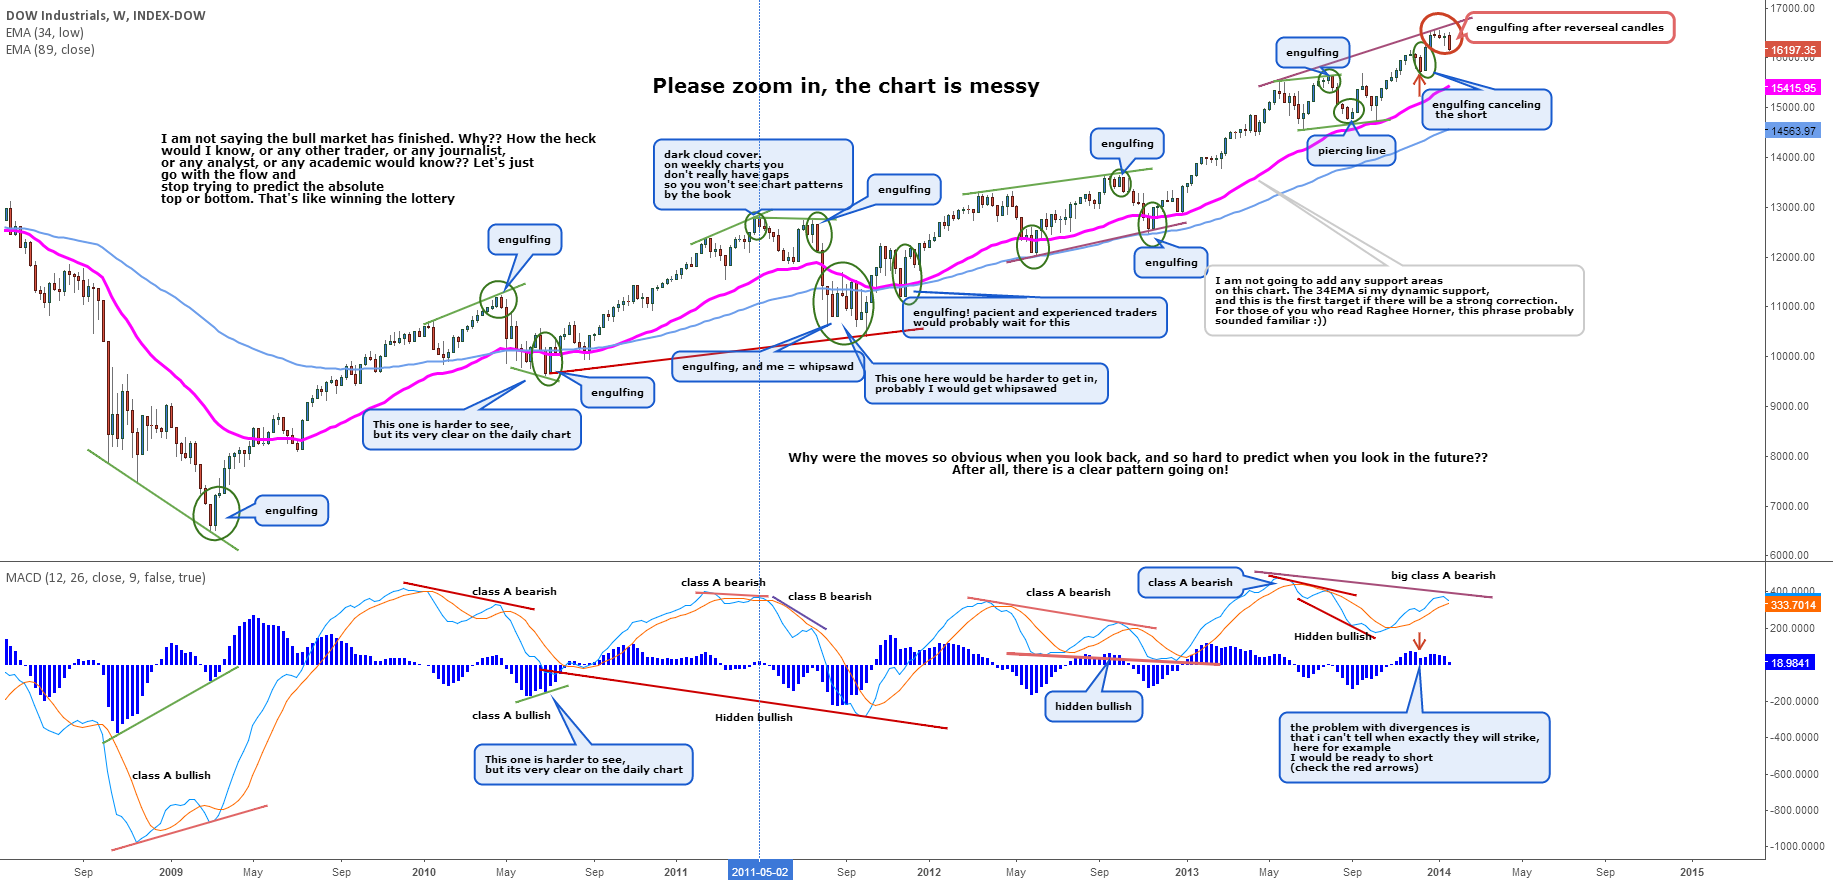 The Dow - Divergence analysis. What